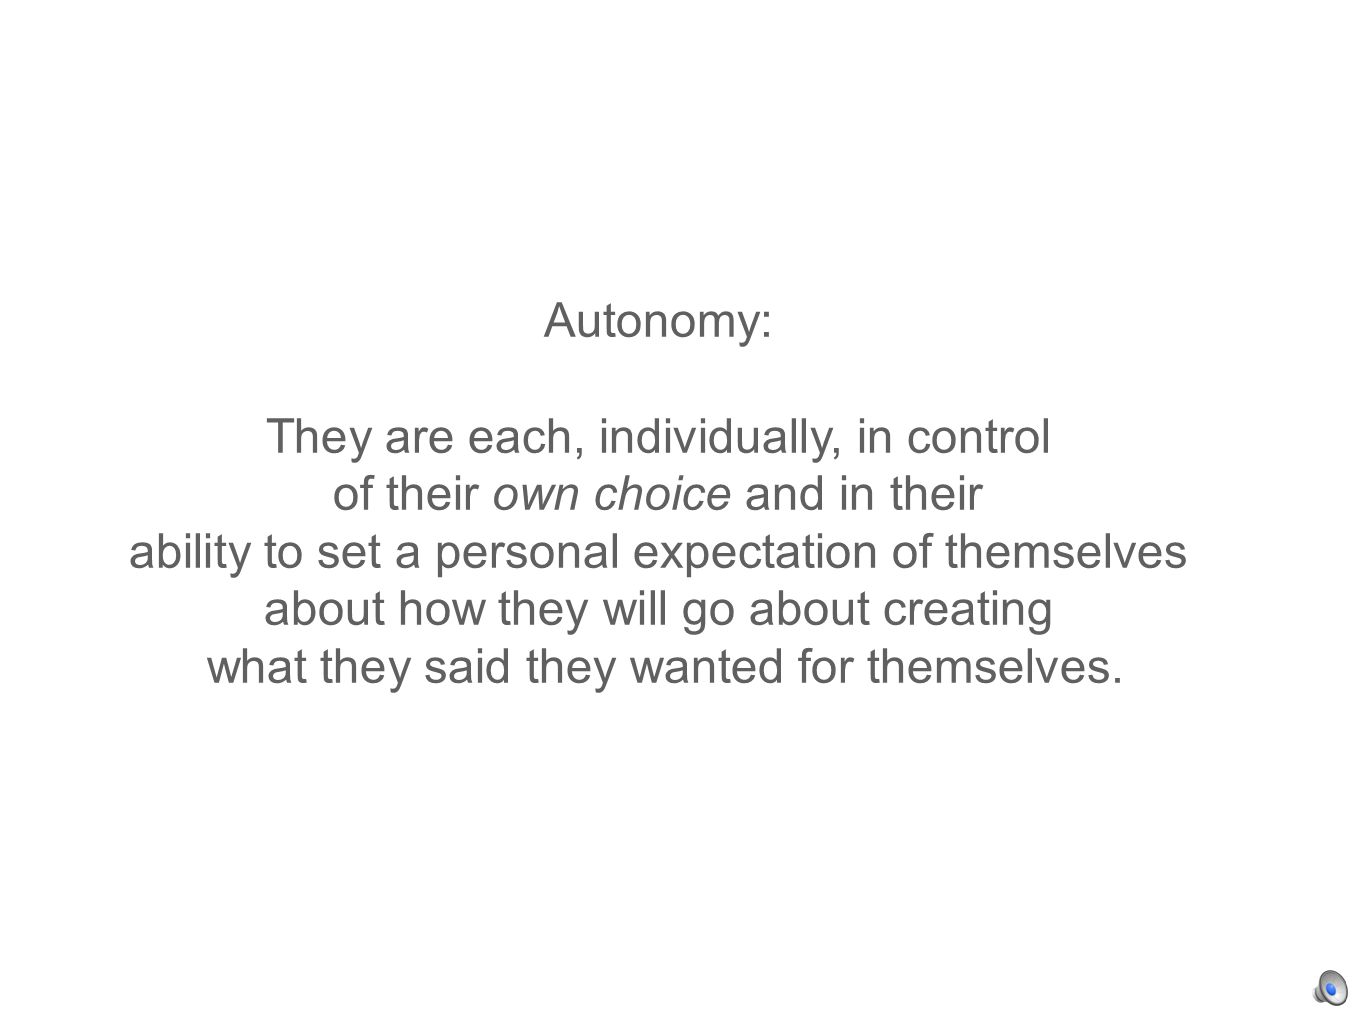 Autonomy: They are each, individually, in control of their own choice and in their ability to set a personal expectation of themselves about how they will go about creating what they said they wanted for themselves.